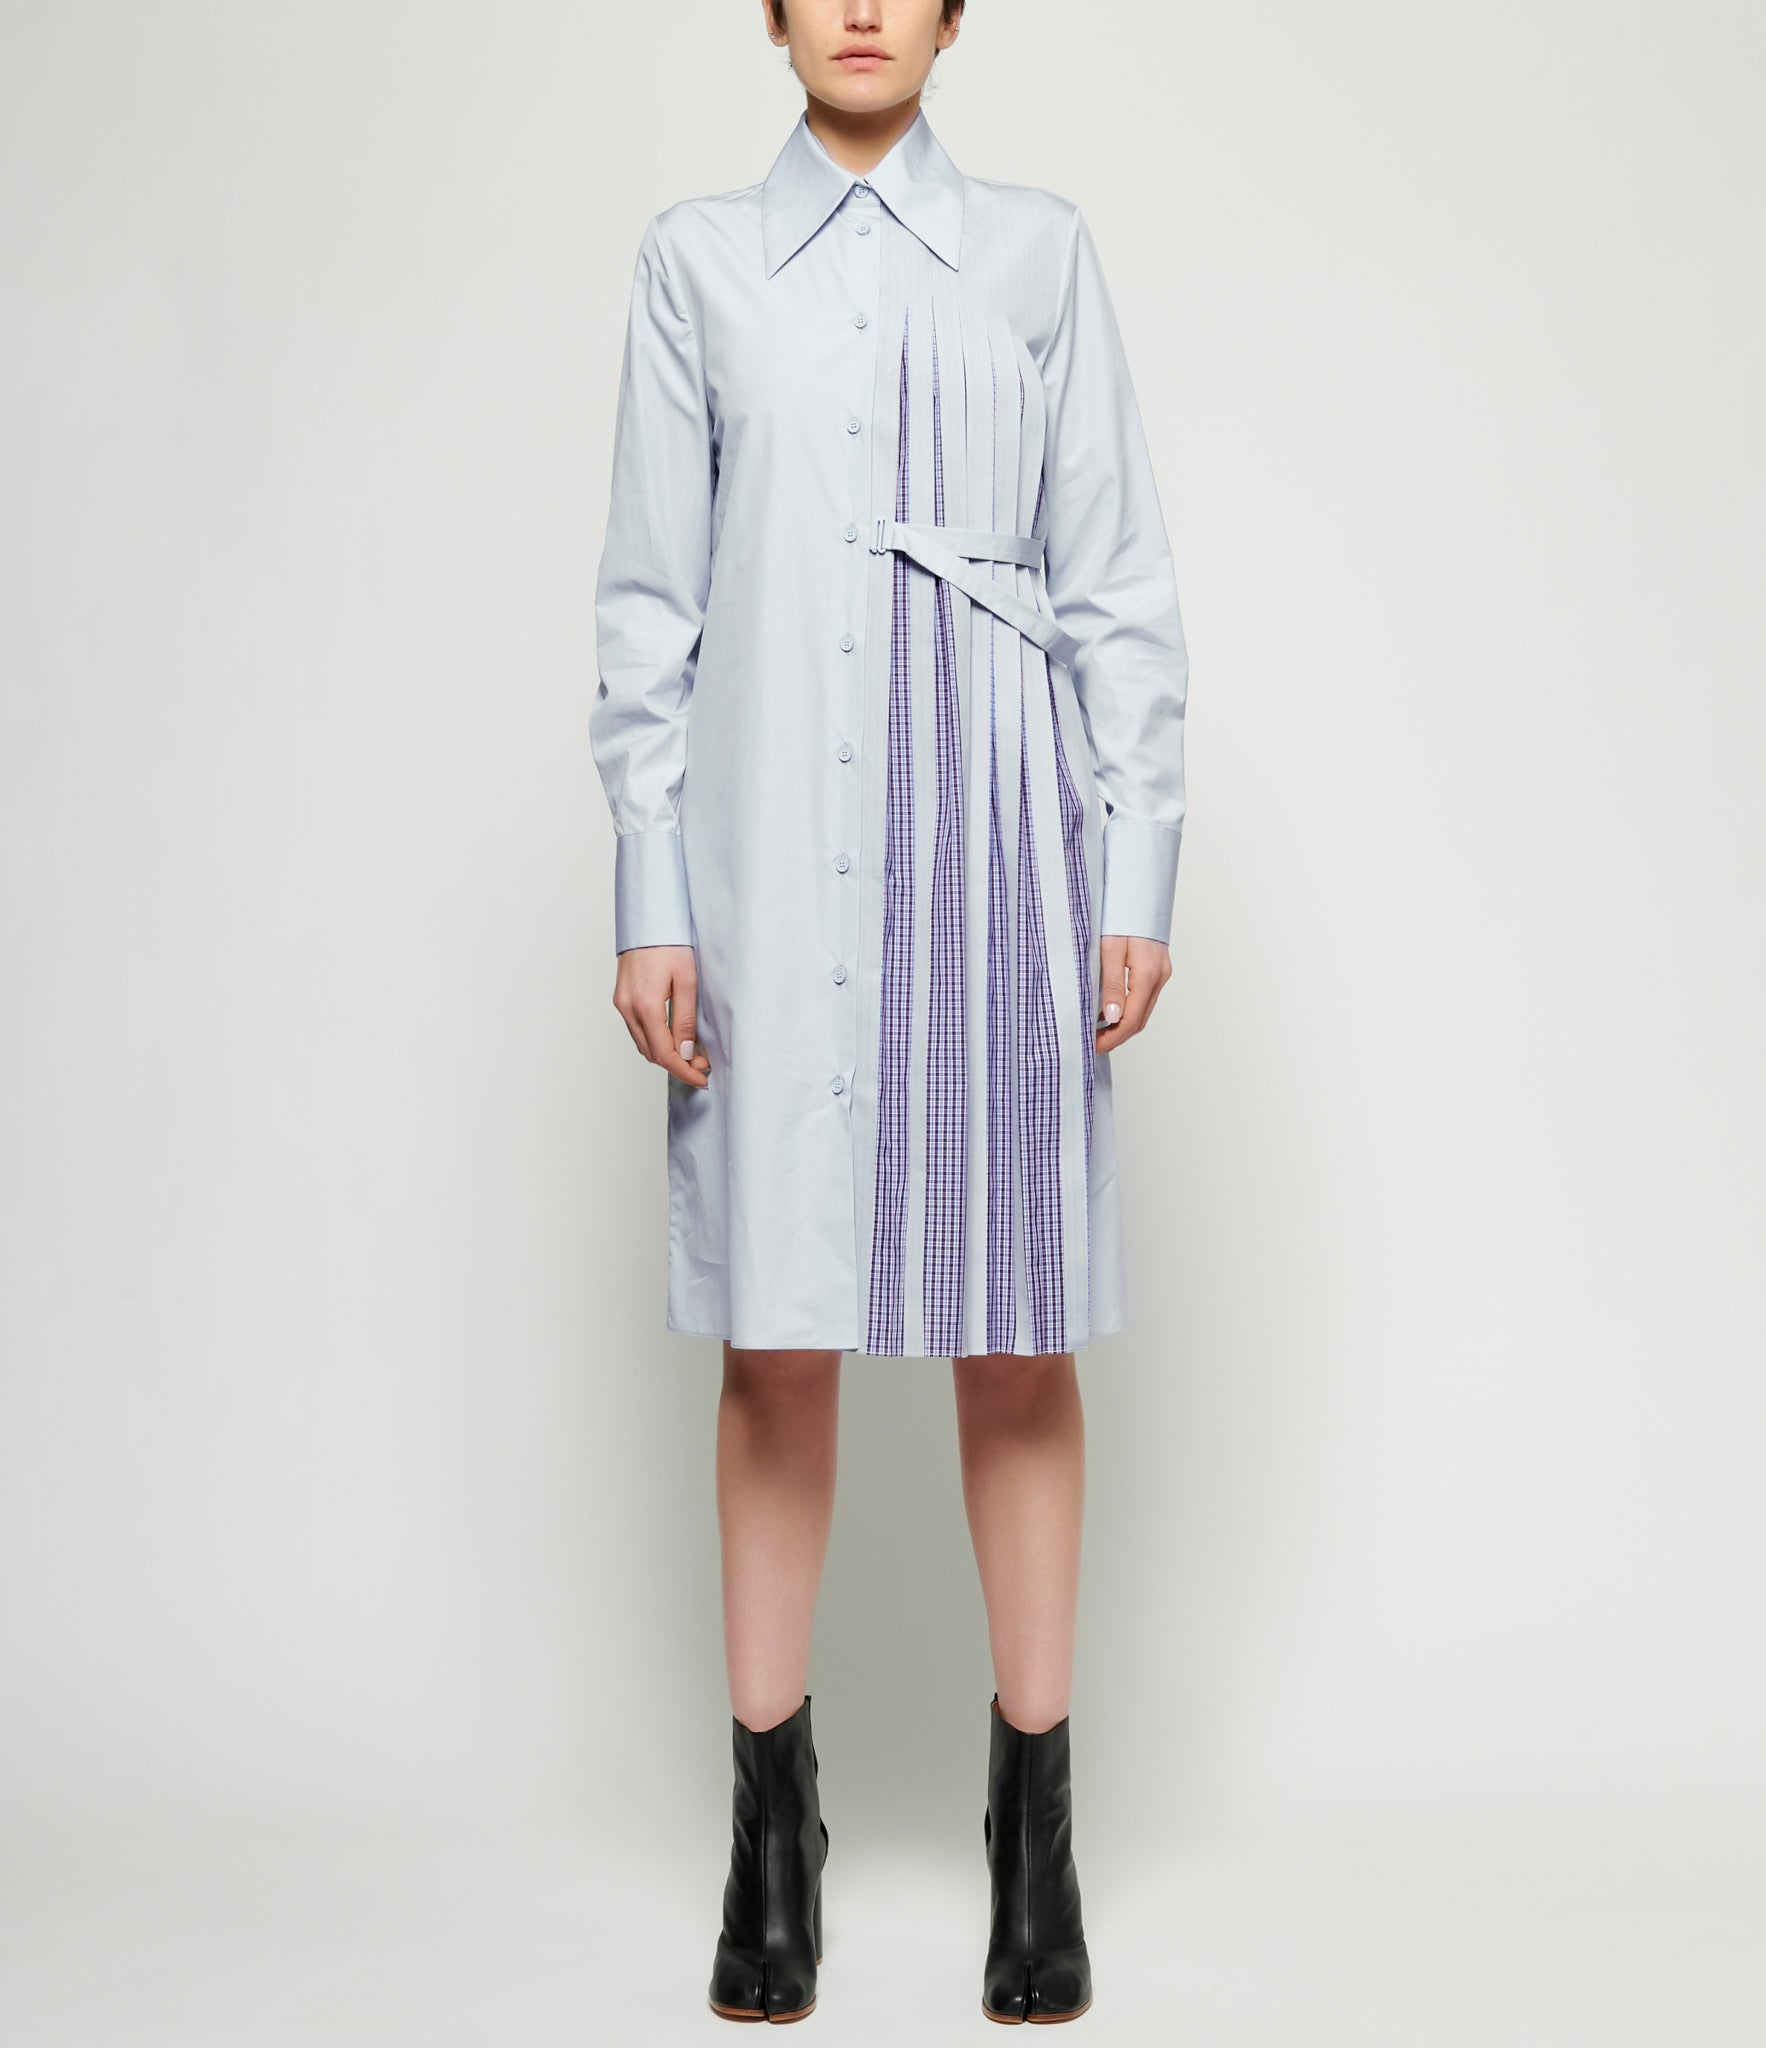 Maison Margiela Cotton Poplin Shirt Dress Ifsohonewyork